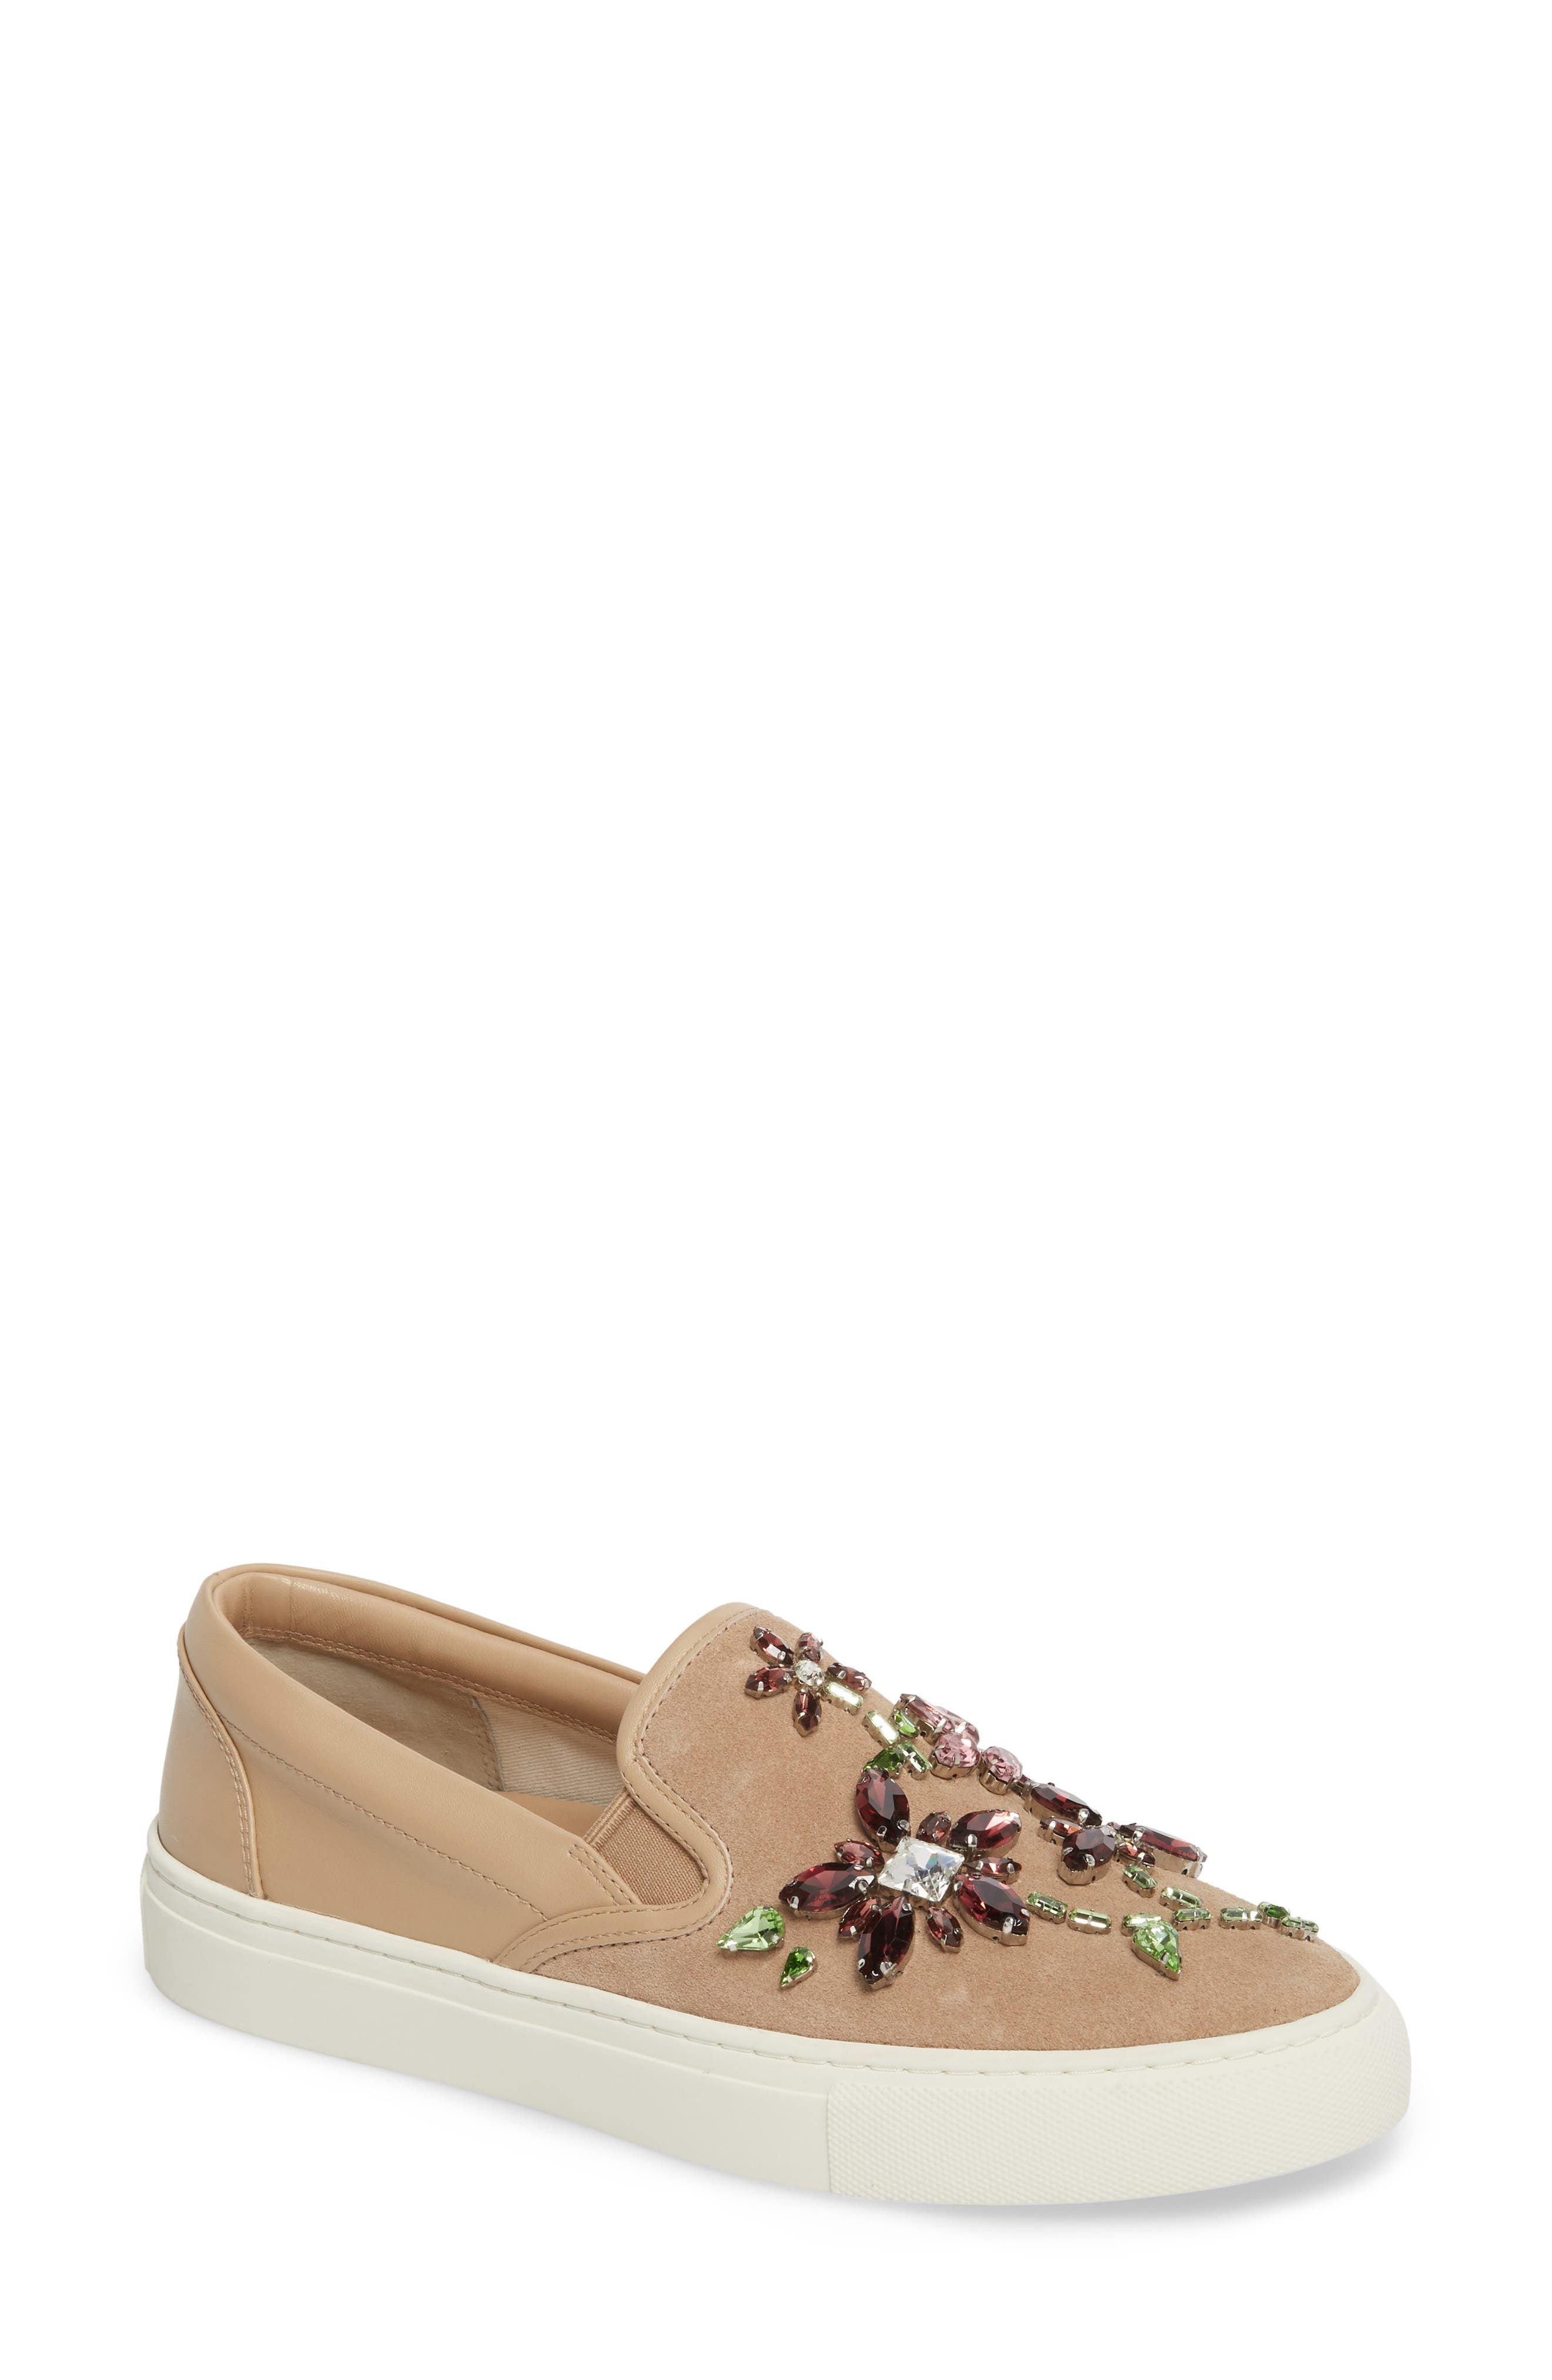 Meadow Embellished Slip-On Sneaker,                             Main thumbnail 1, color,                             254